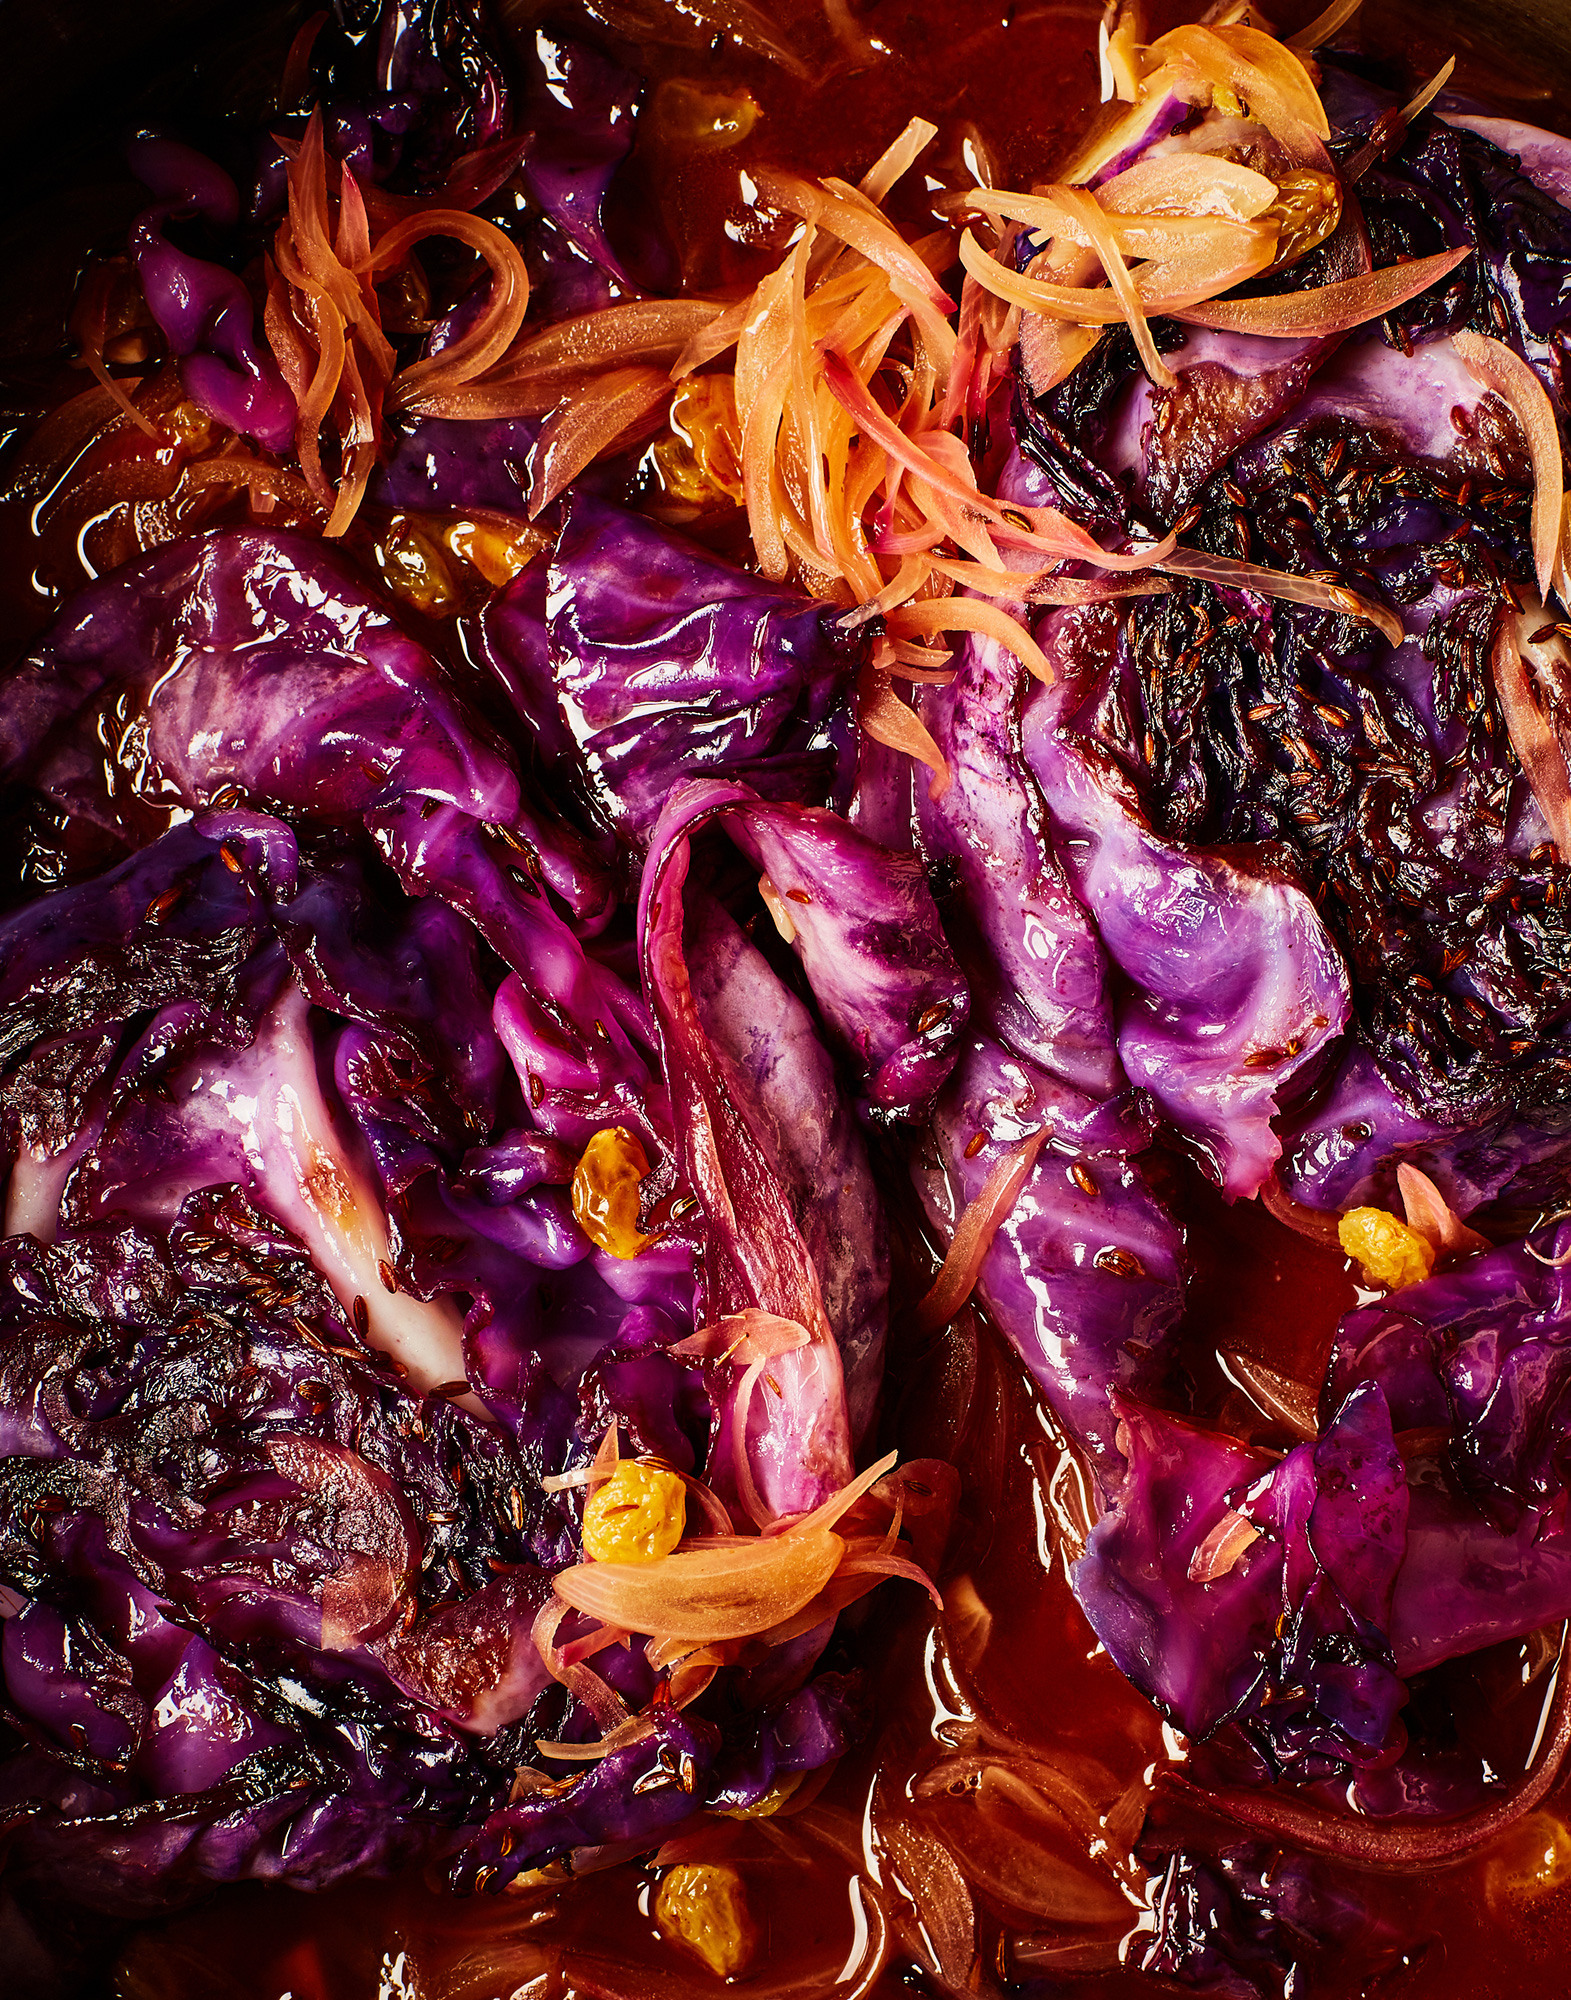 22_Red_Cabbage_Steaks_wine_and_Grapes_J_Miller_0438